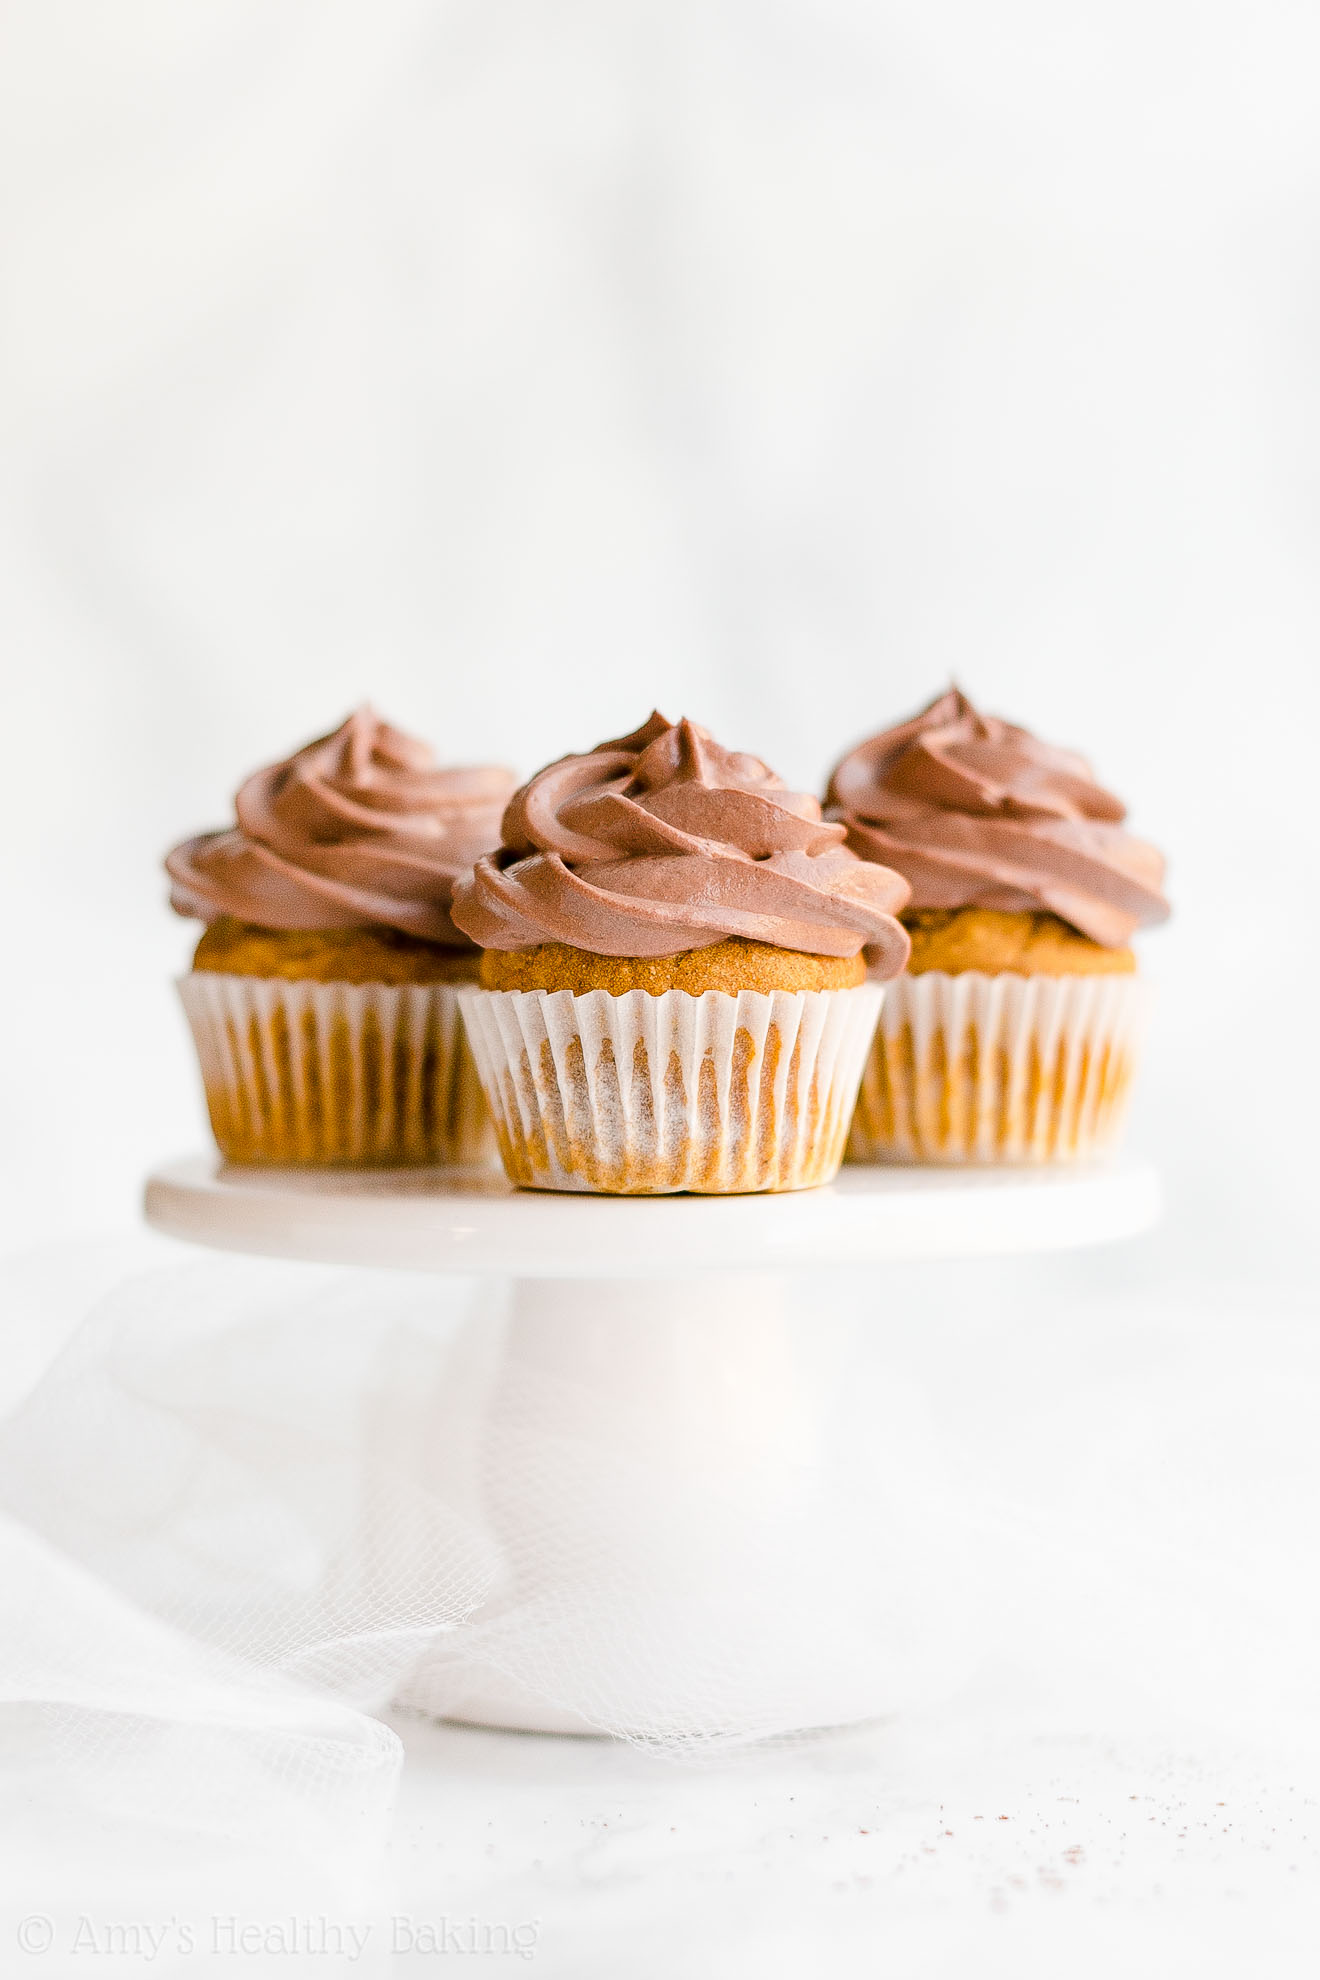 Healthy Low Fat Gluten Free Small Batch Mini Pumpkin Cupcakes with Chocolate Frosting